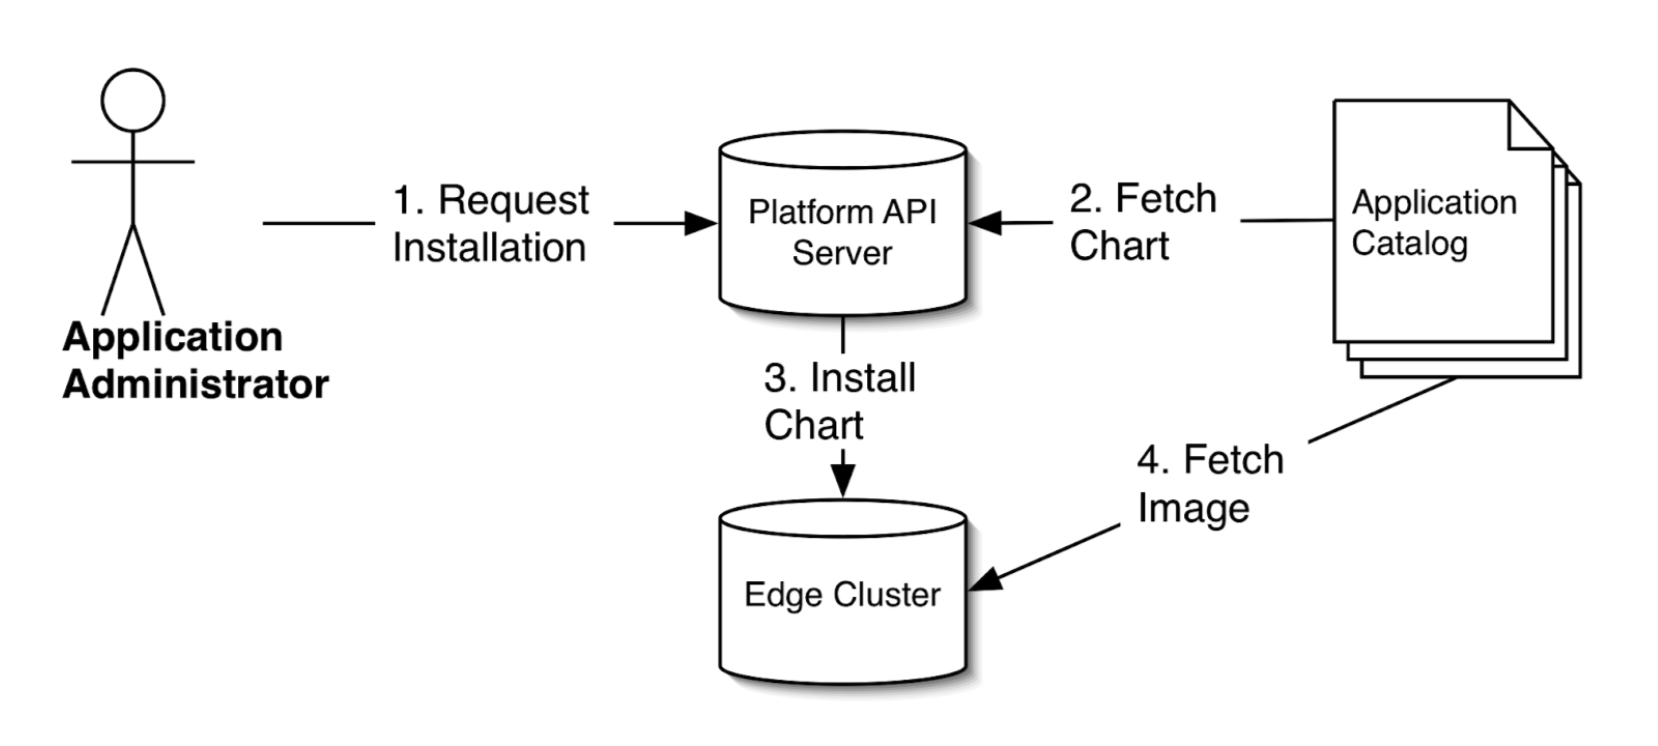 The SLATE Application Install Process begins with a user sending an install request to the SLATE API server. The server fetches the requested application from the Application Catalog, and sends the detailed installation commands to the edge cluster. When the edge cluster starts the application it fetches the application's container images from the application catalog.